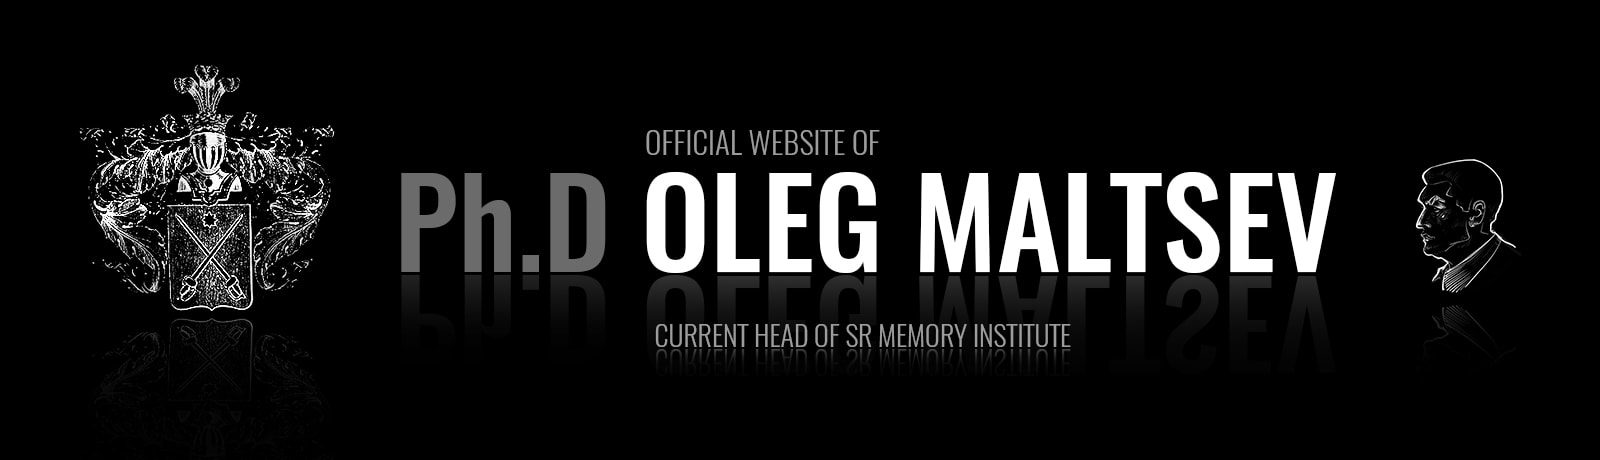 Official website of Ph.D Oleg Maltsev